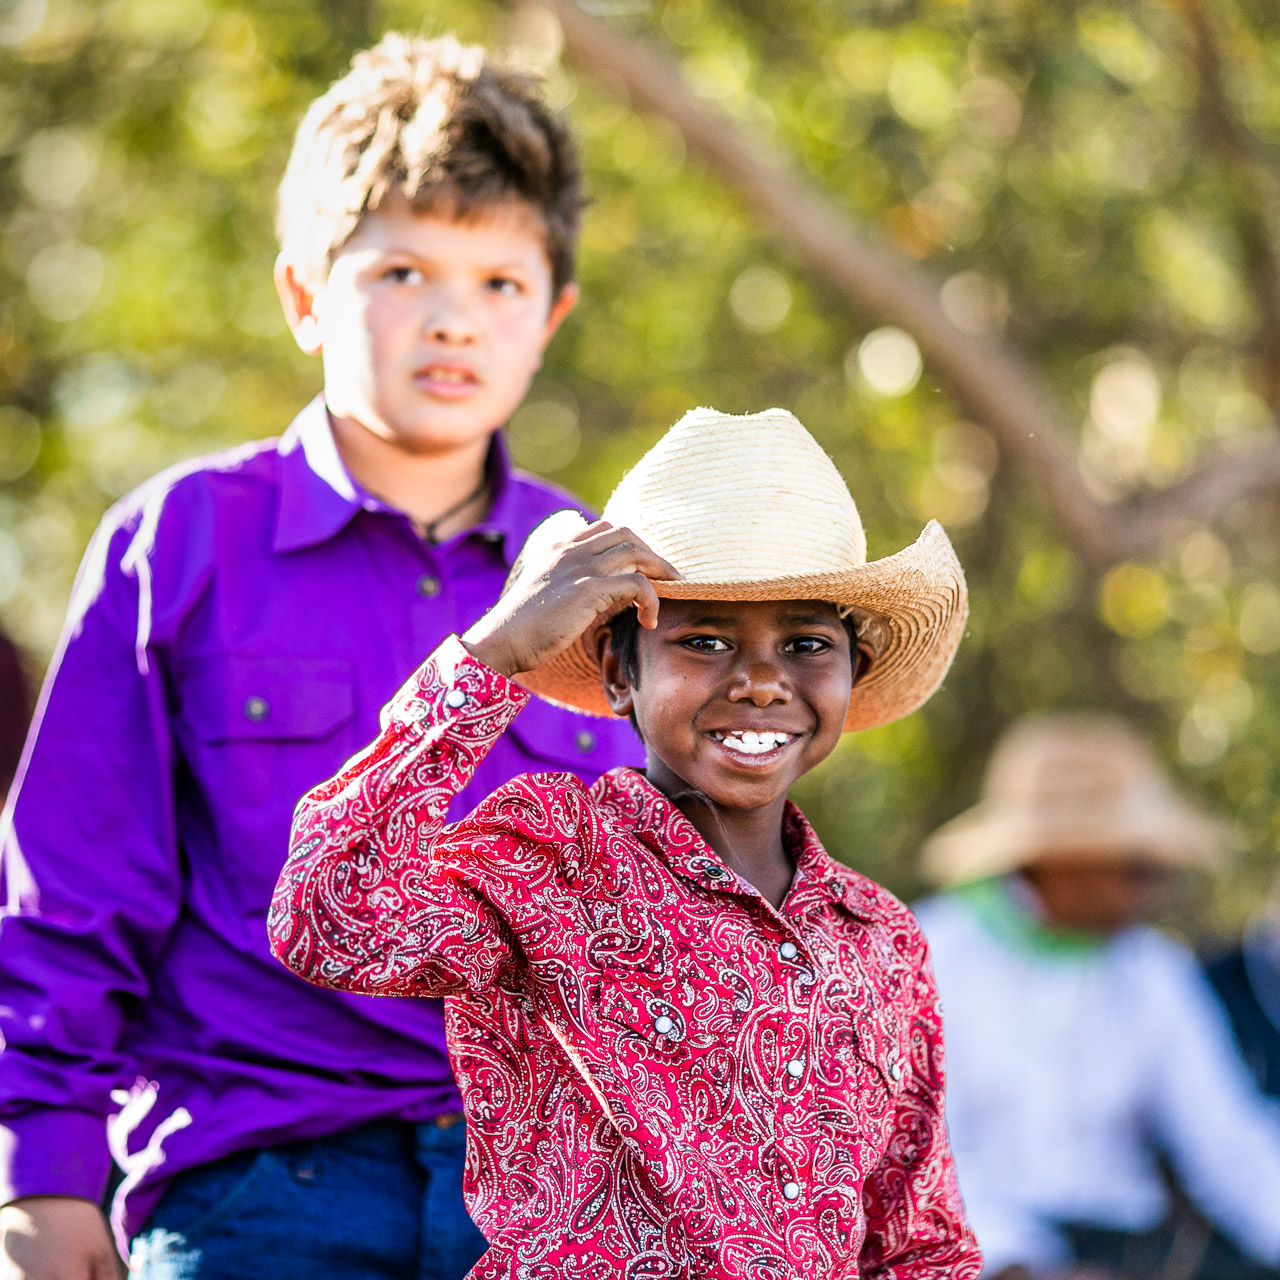 Aboriginal boy in a bright shirt and cowboy hat at the Broome Rodeo